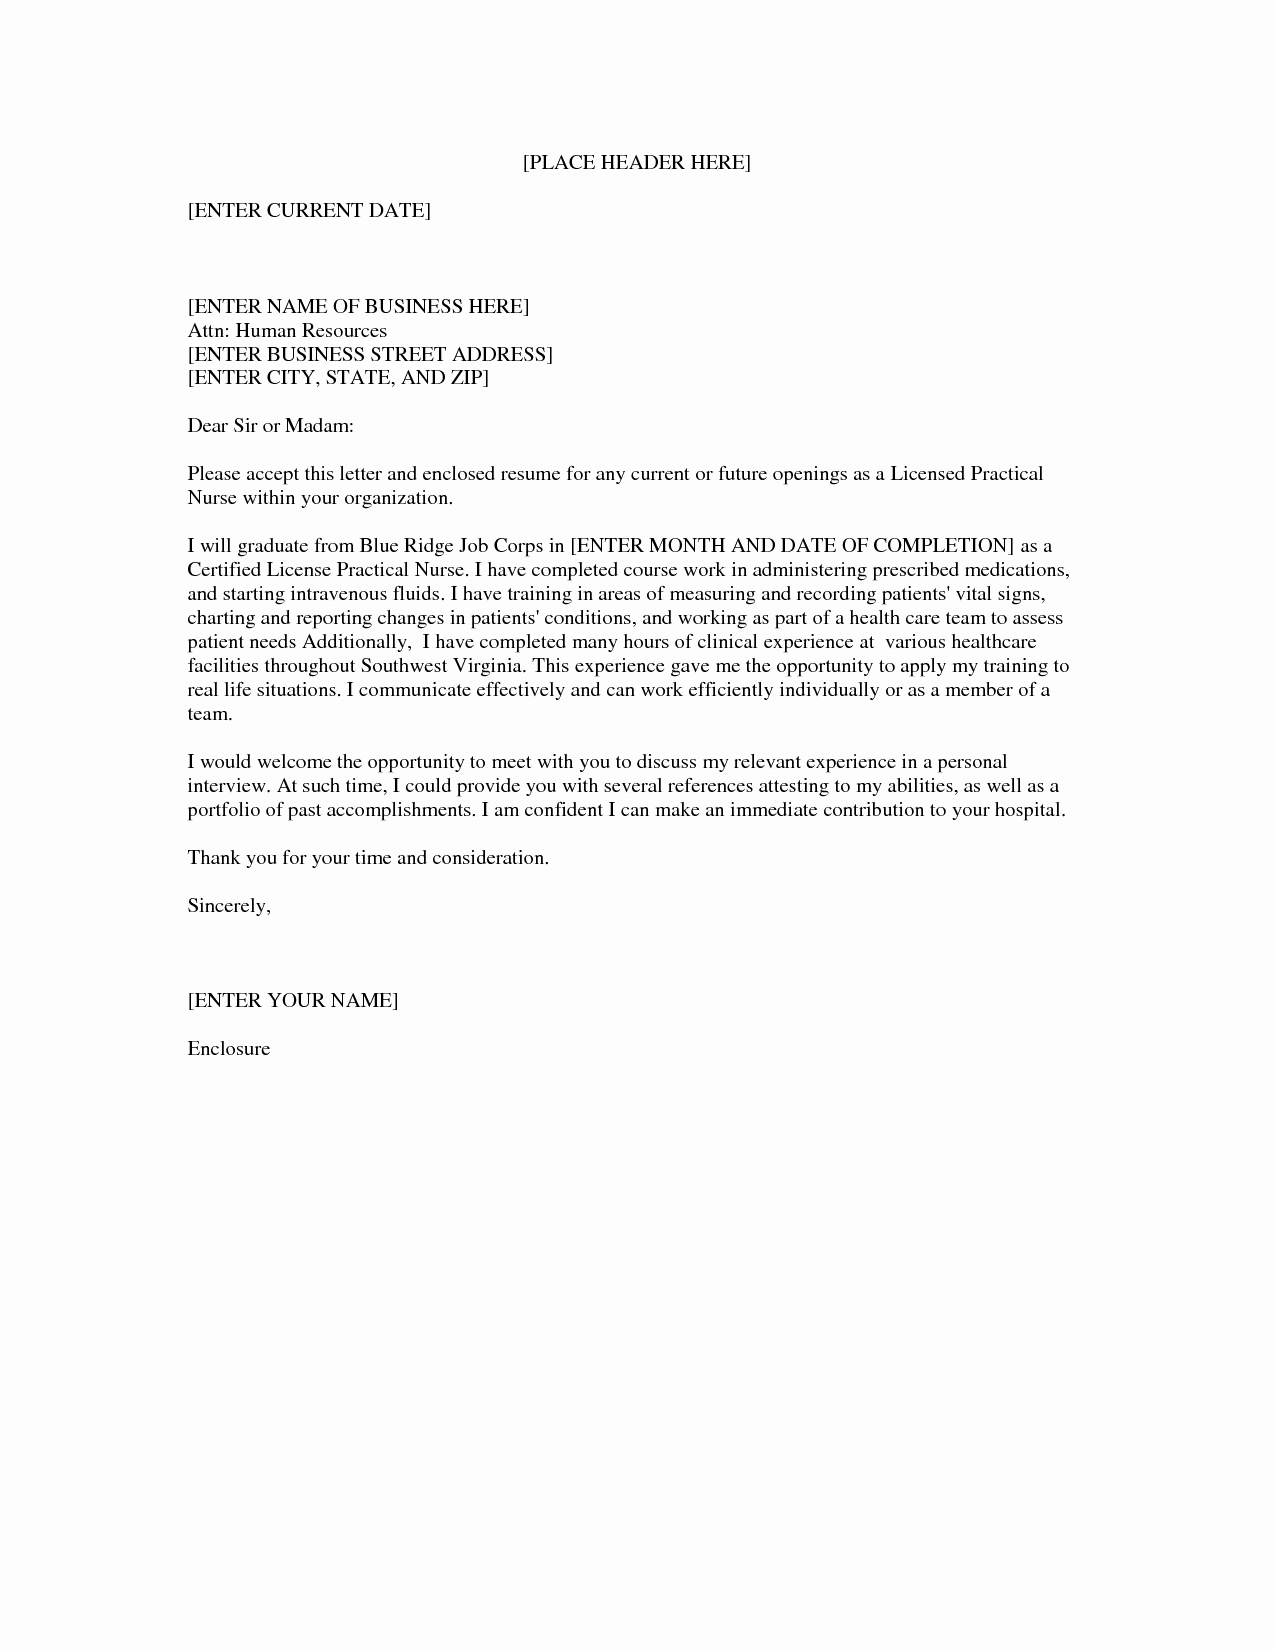 Nurses Cover Letter Template Elegant Lpn Nursing Cover Letter Sample